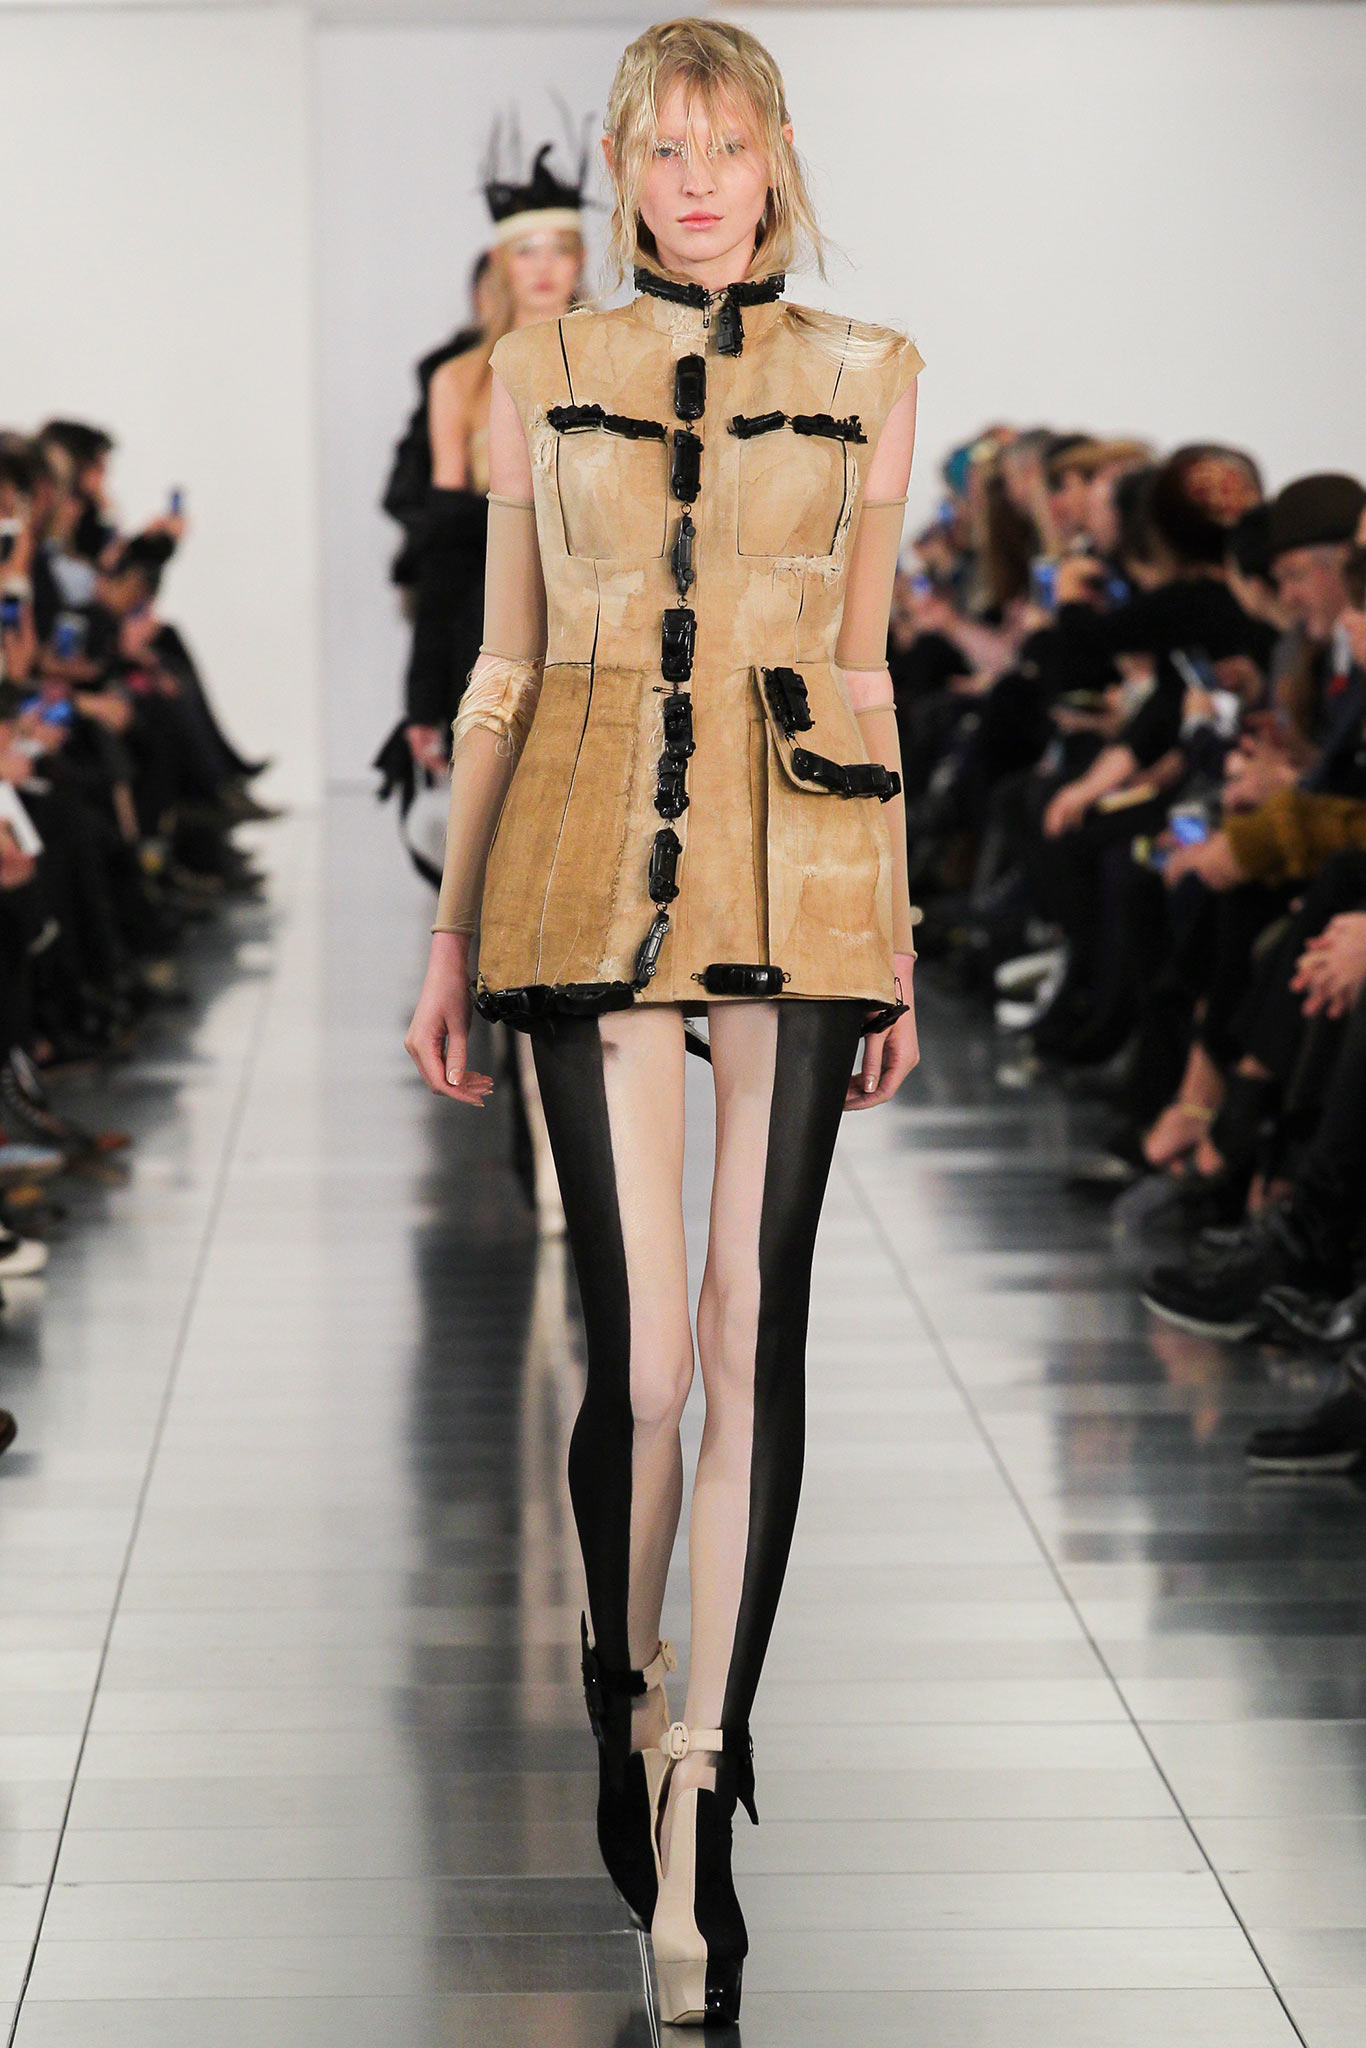 He then finished the show by coming out in classic margiela manner